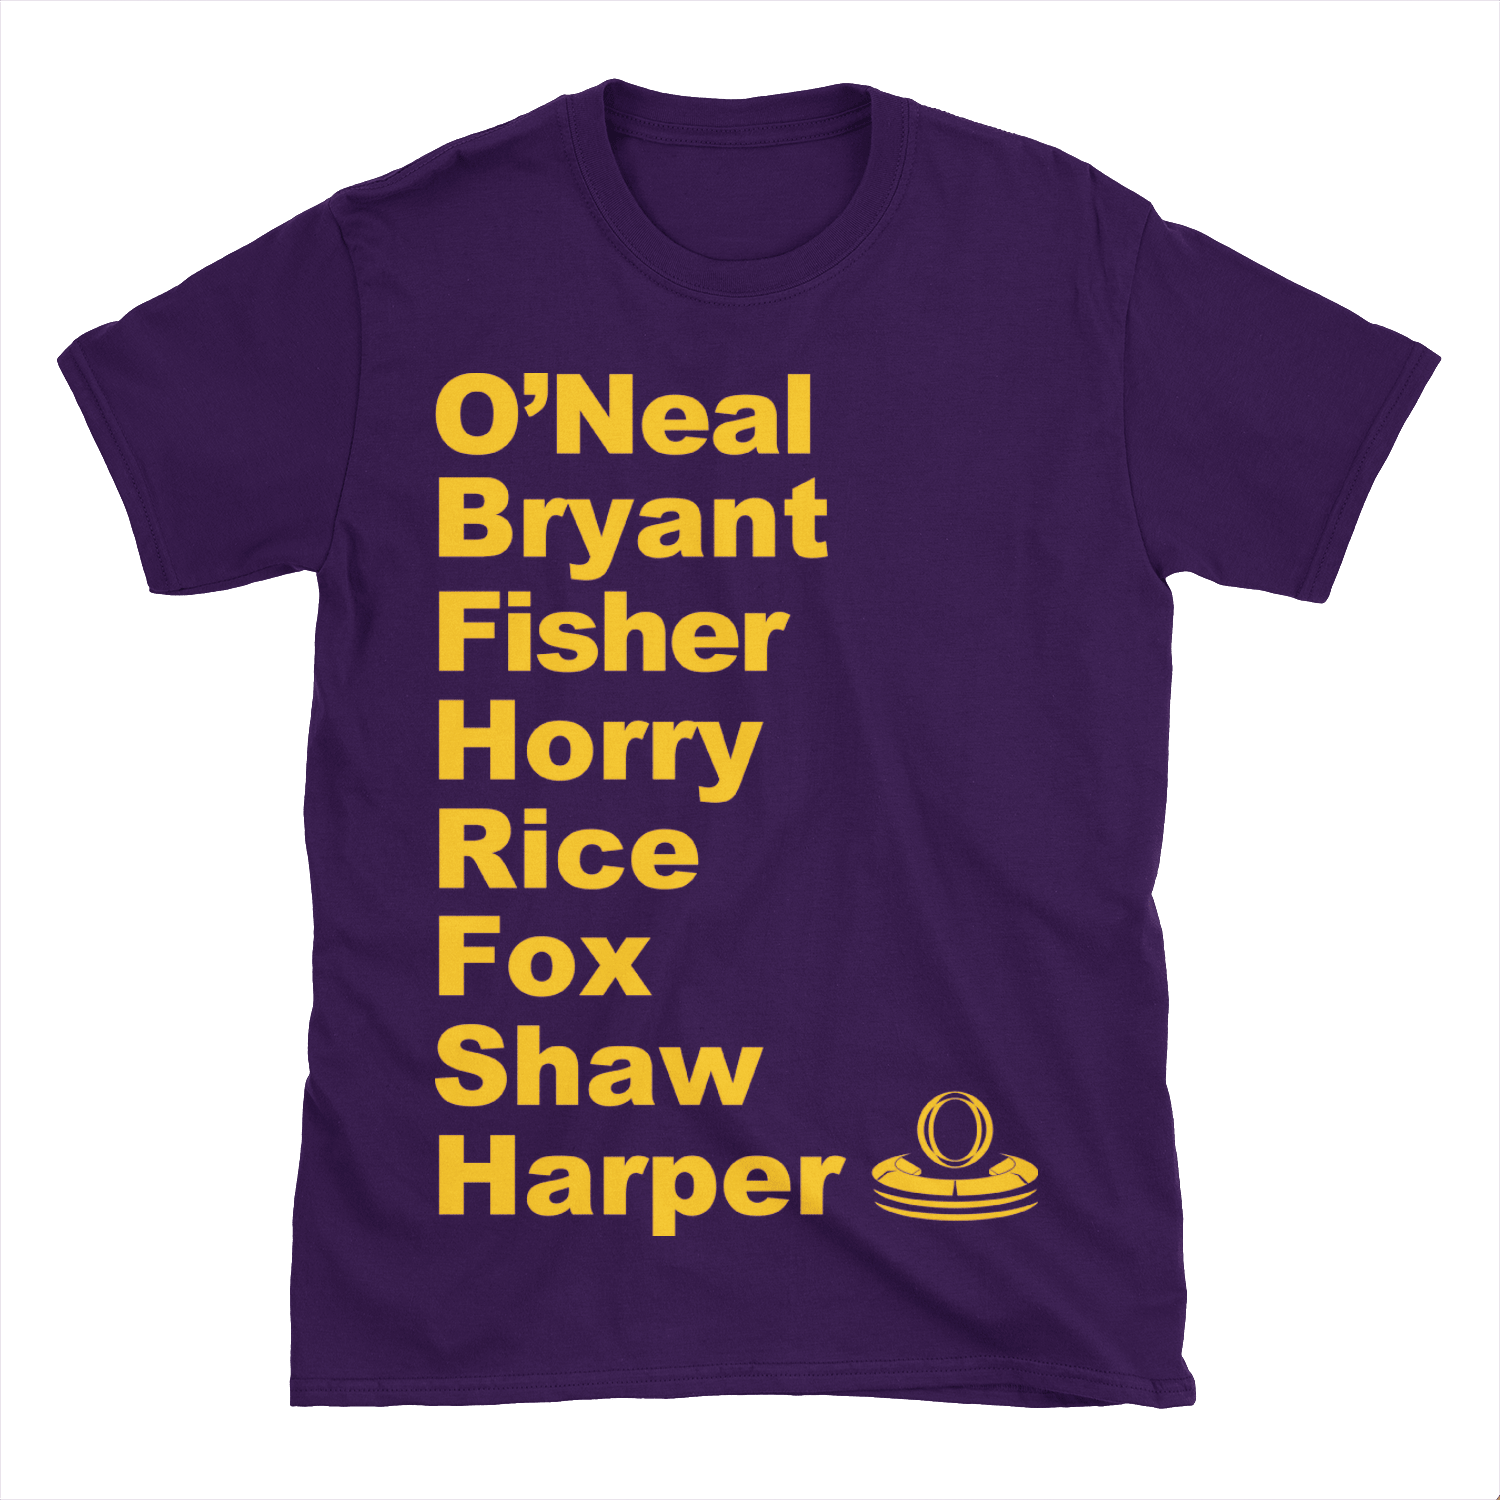 New Dynasty ('99-'00) Lakers Roster T-Shirt